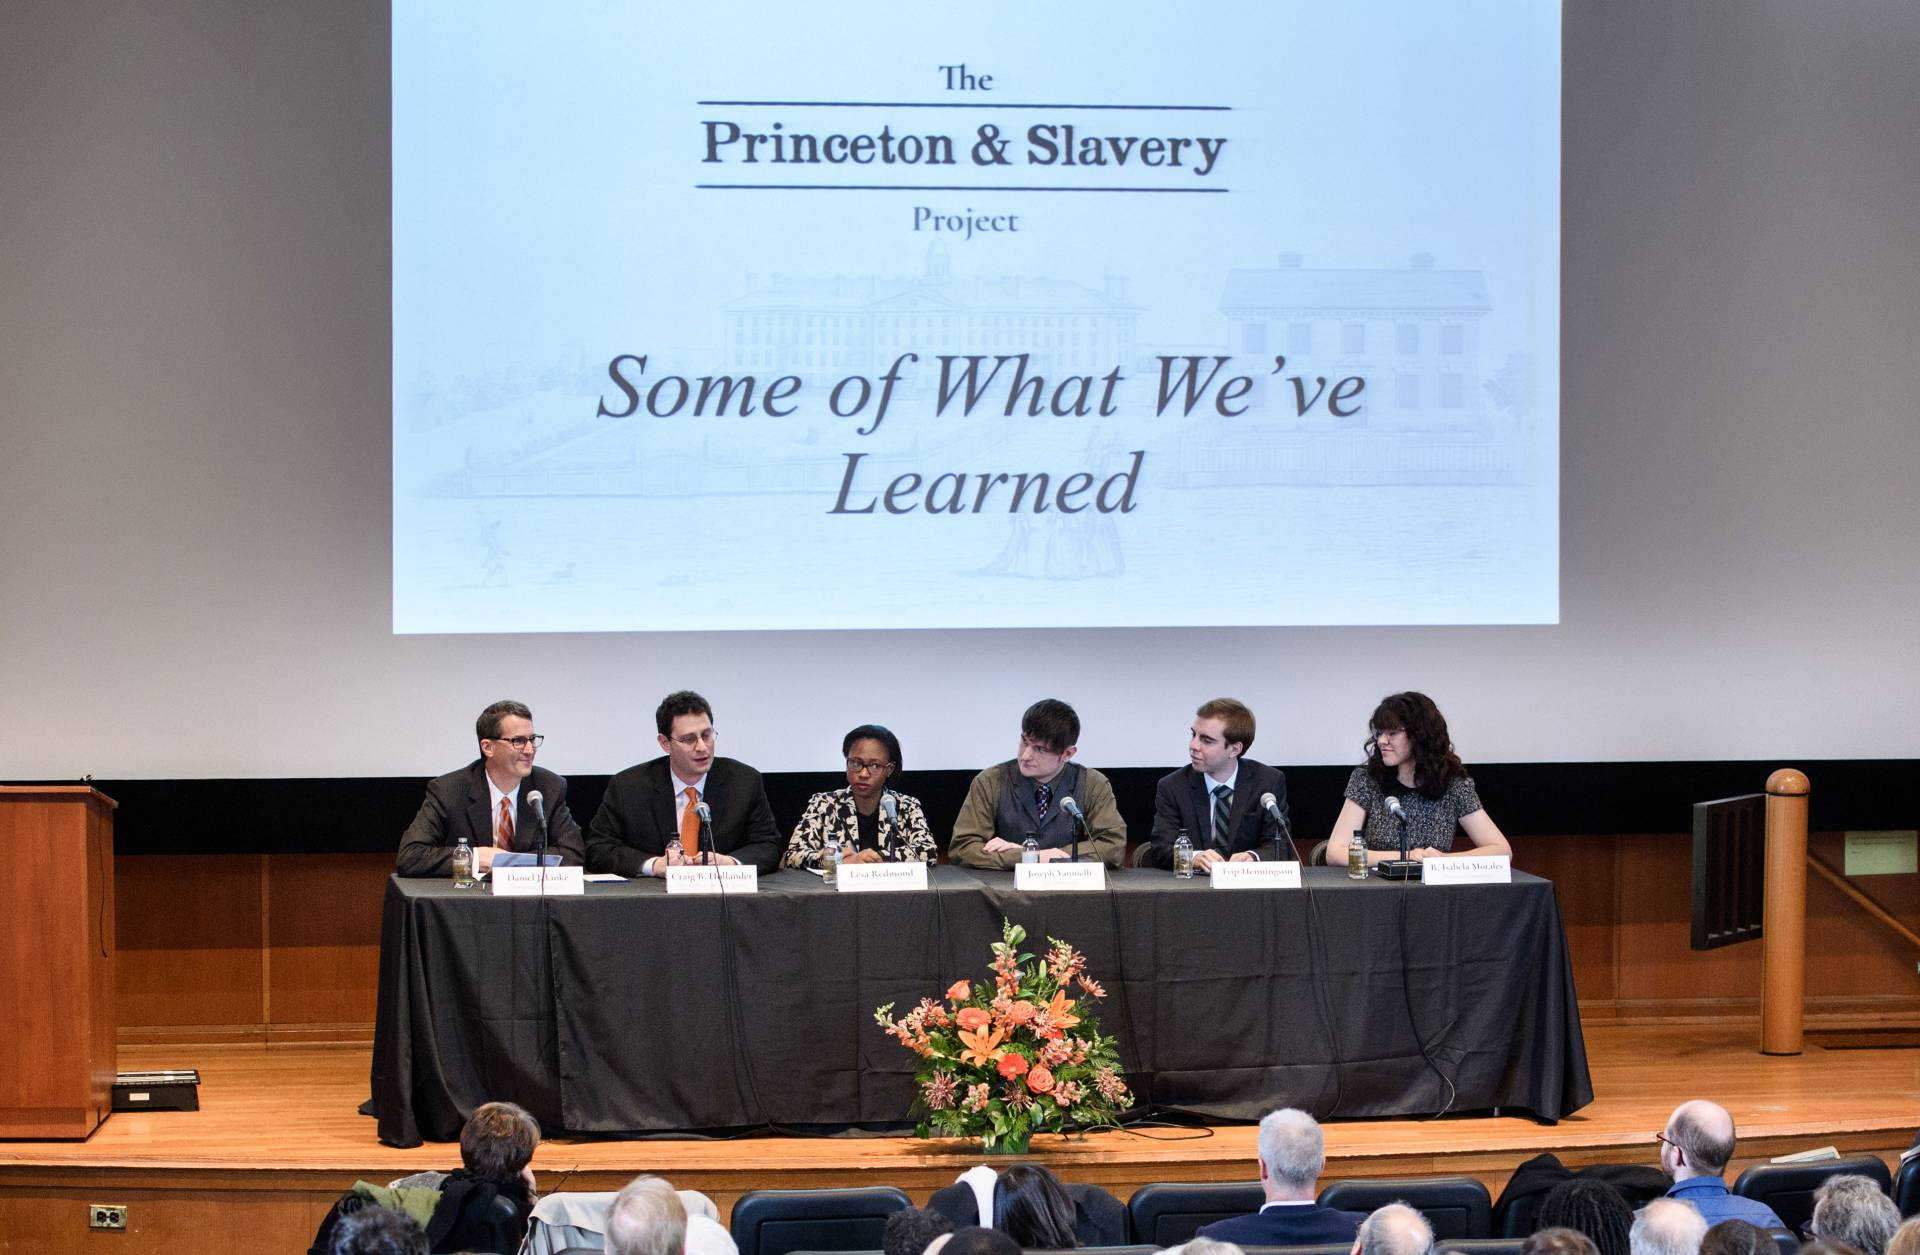 Princeton and Slavery Symposium academic panel